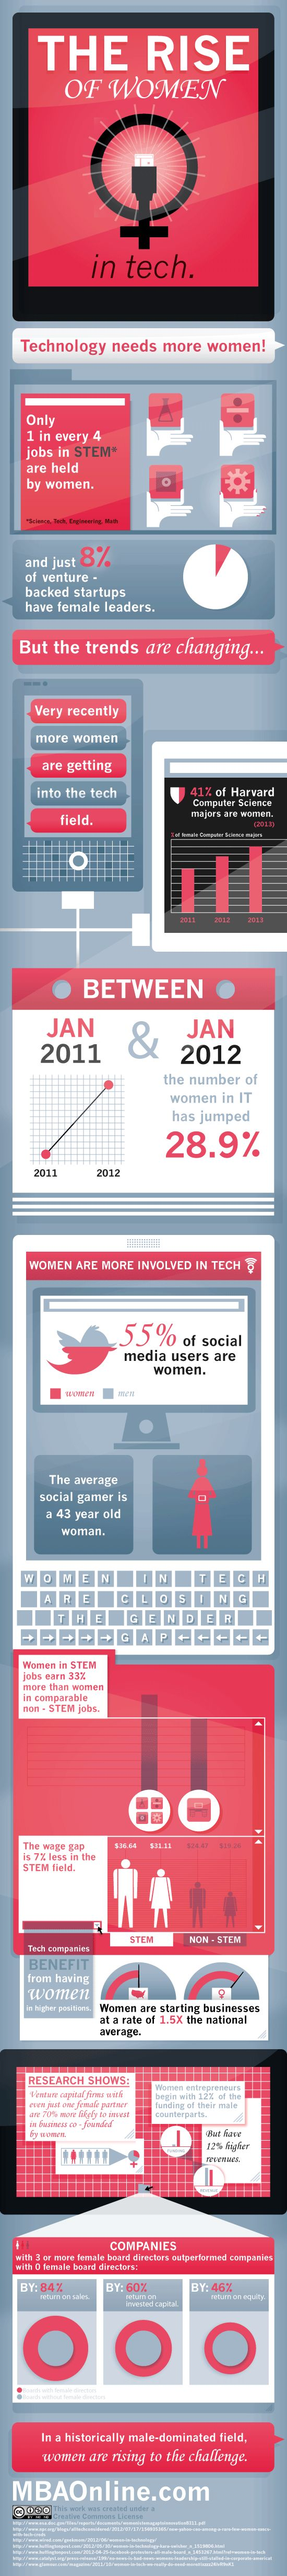 """Women are more active social media users and gamers than men; many are starting tech companies with less funding than men, yet their companies have higher revenues; and the number of women majoring in computer science at one of the best universities in the world has been rising steadily since 2011."""